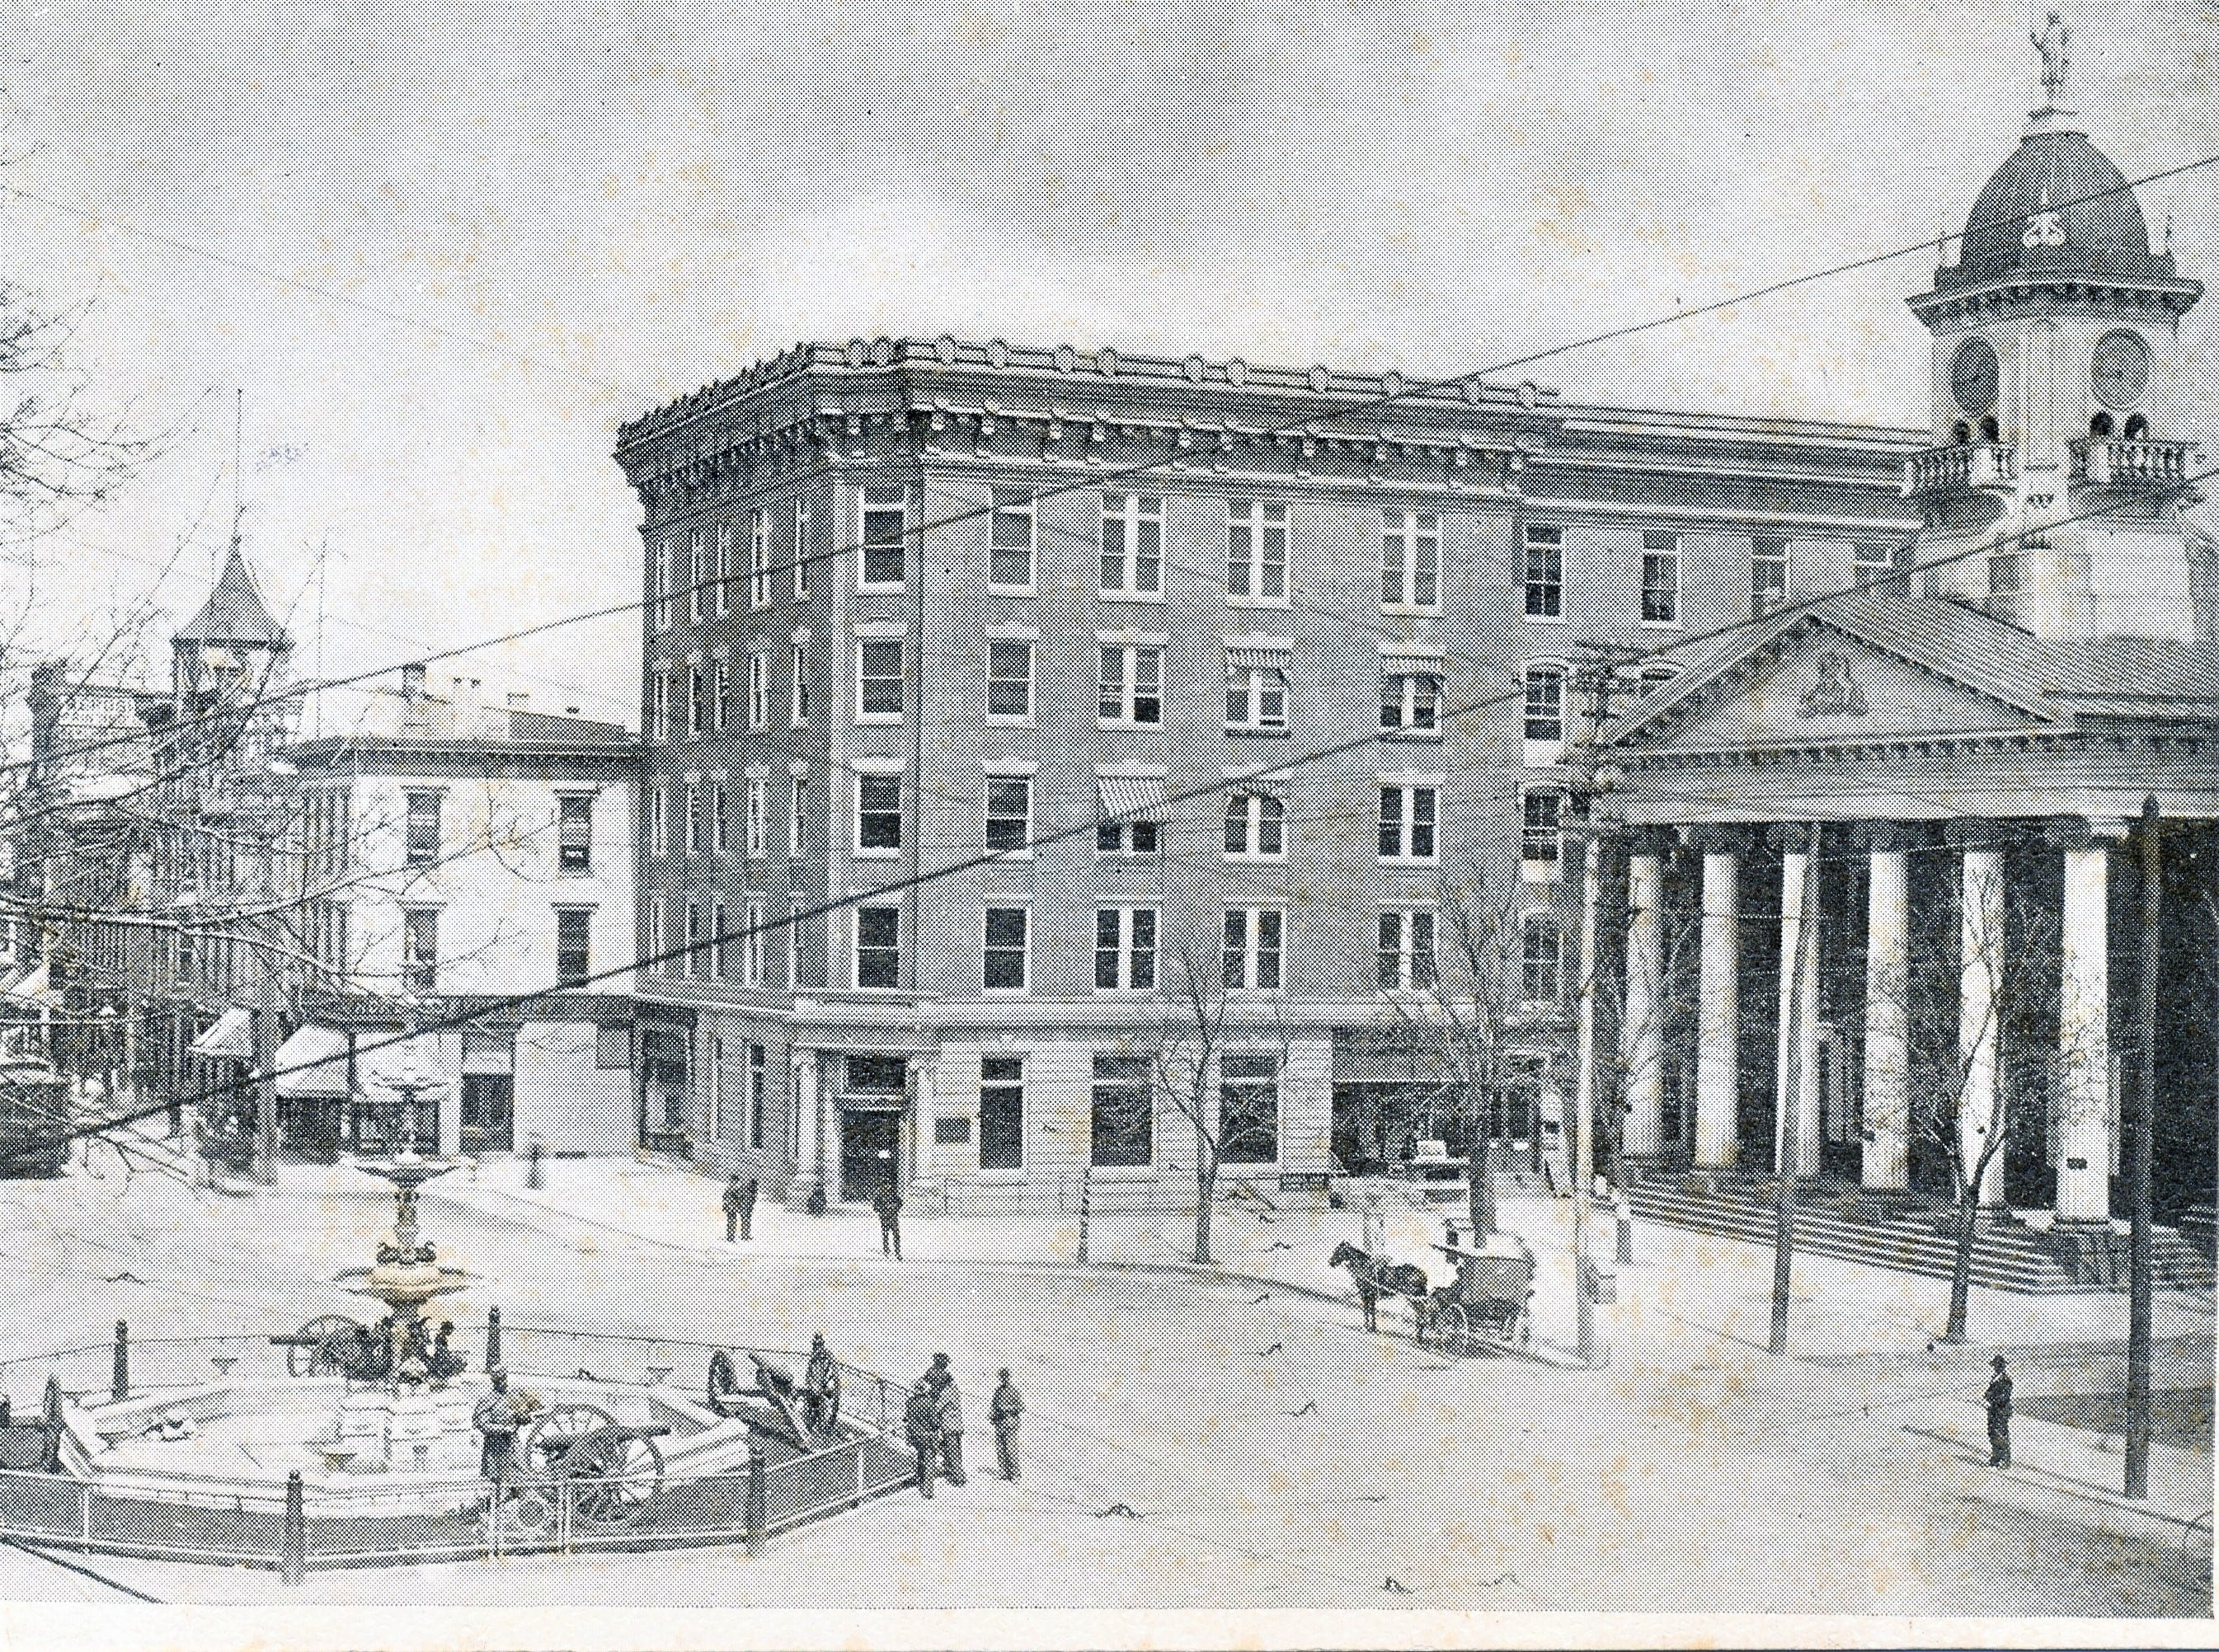 A look at the Chambersburg Trust Company building next to the Old Courthouse on Memorial Square in 1906. The building will soon be razed as part of the Franklin County Court Facility Improvement Project.